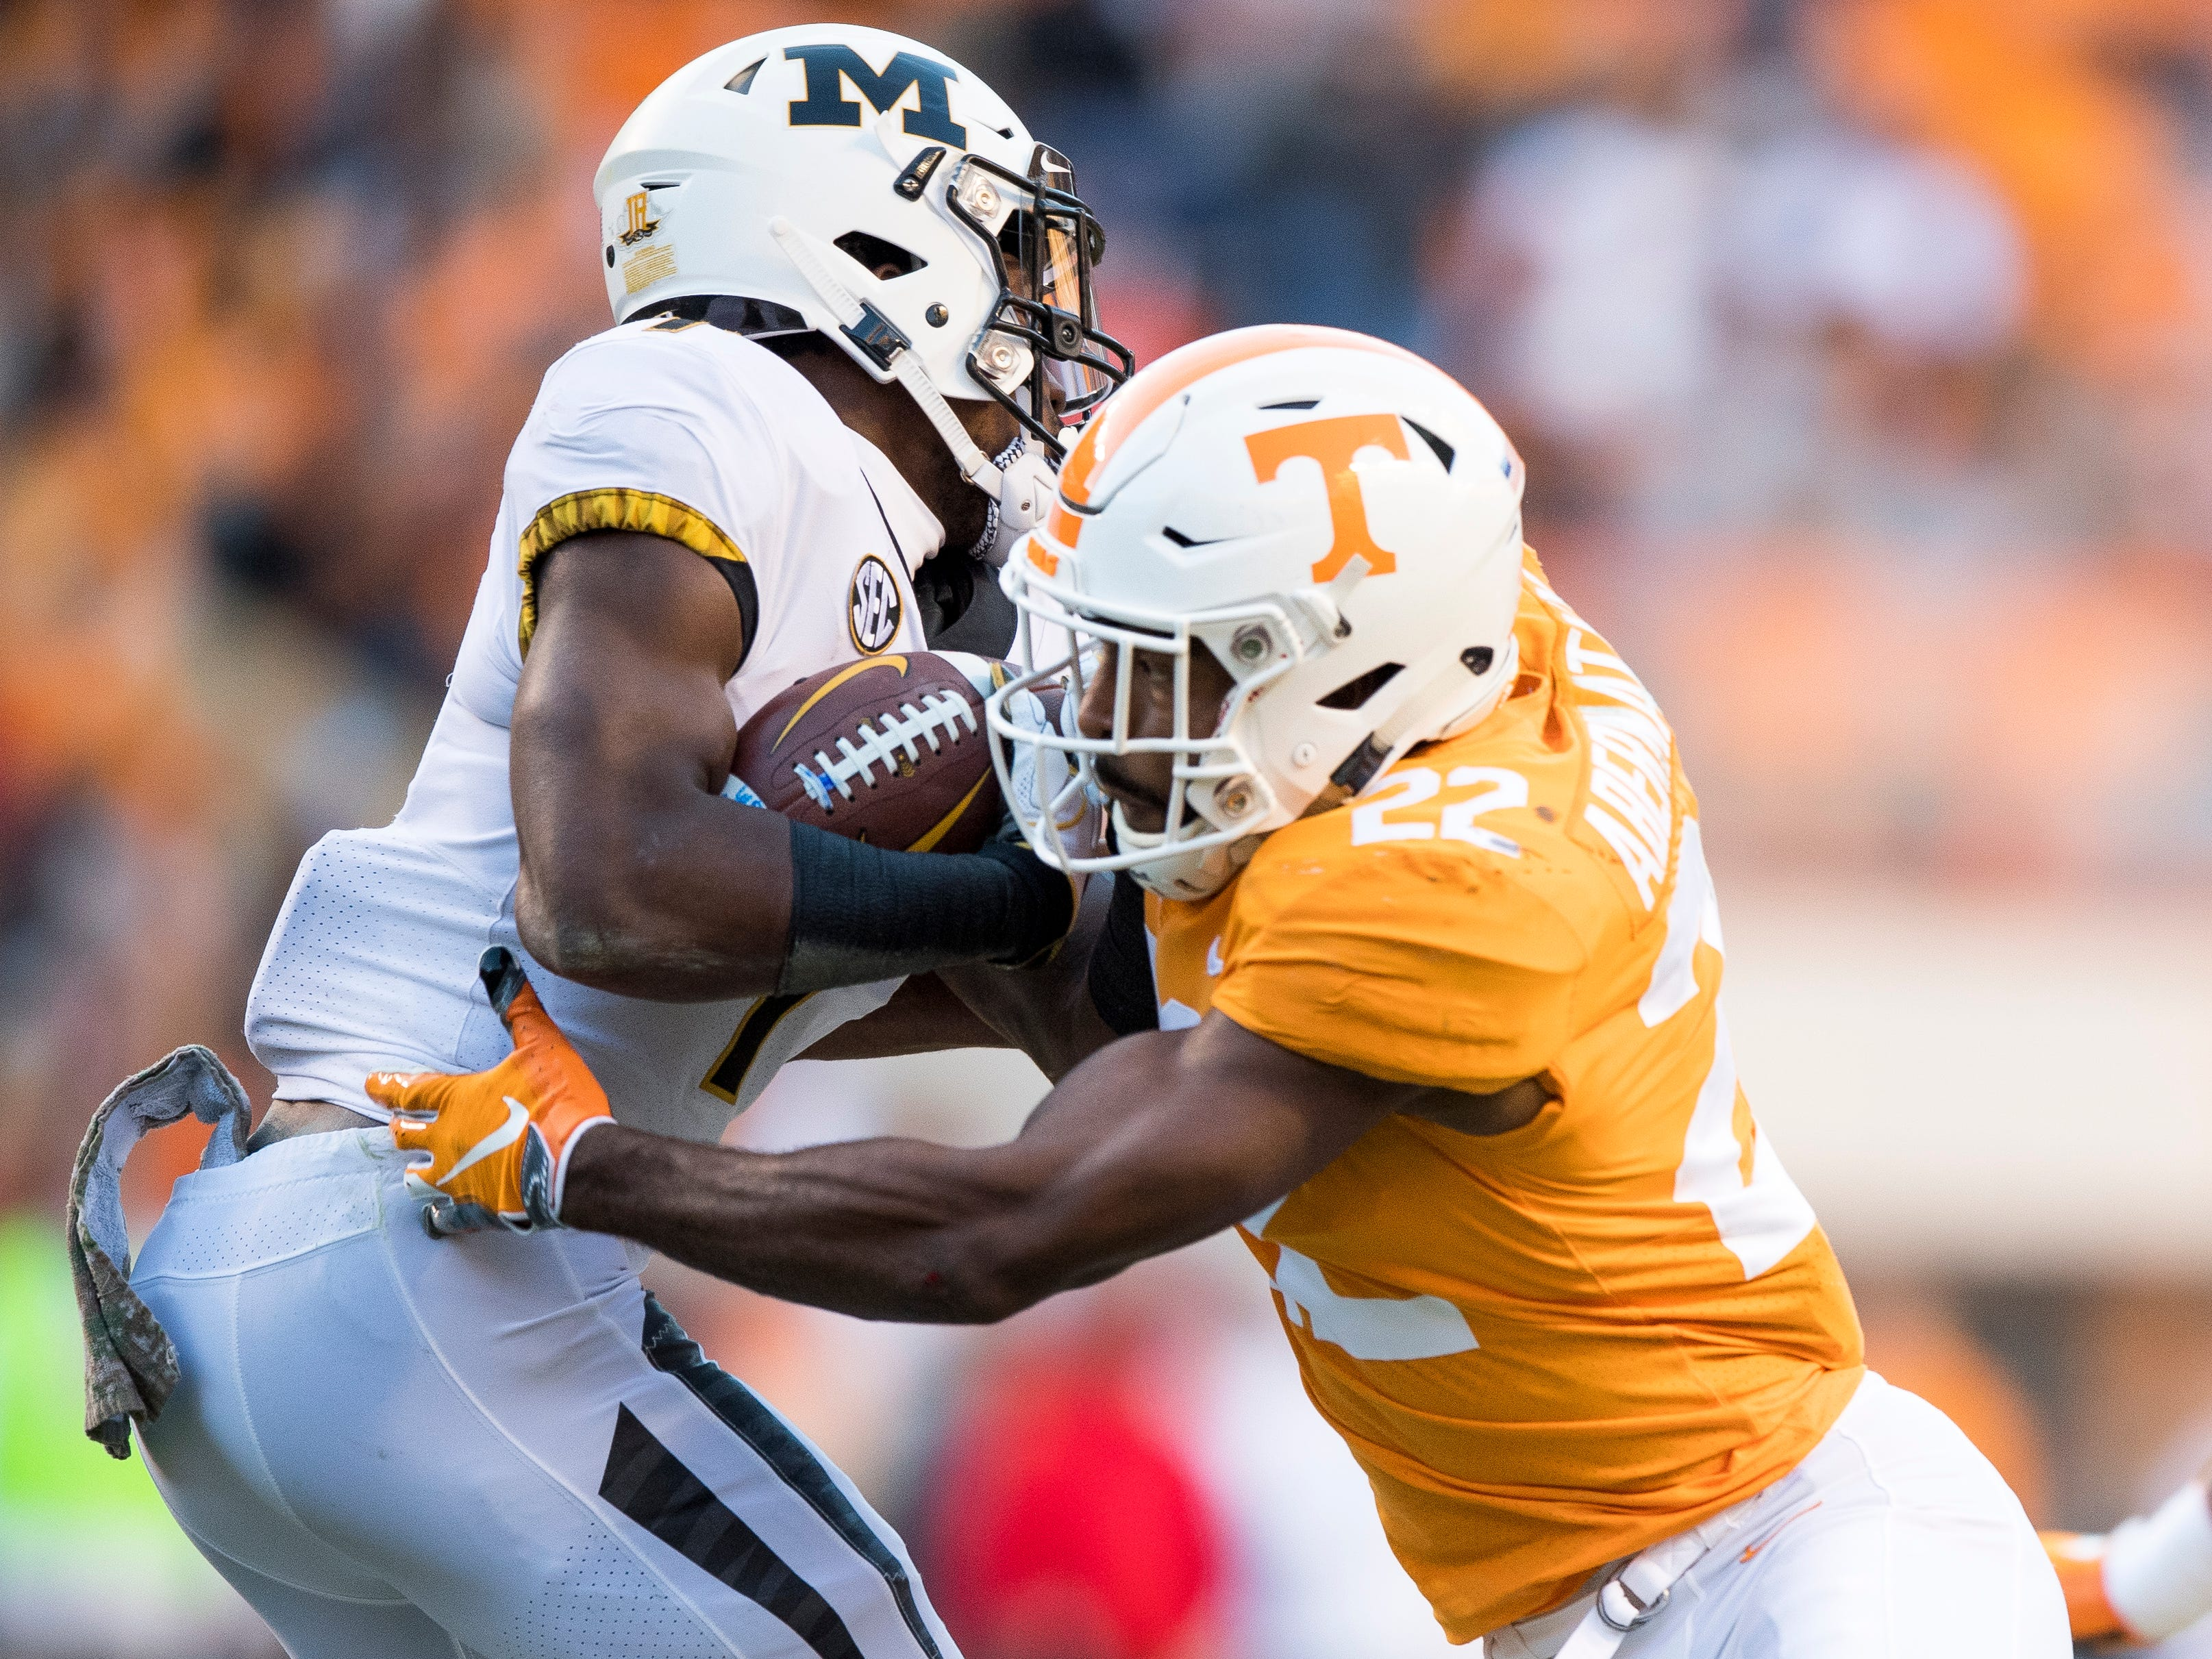 Tennessee defensive back Micah Abernathy (22) takes down Missouri running back Tyler Badie (1) during the Tennessee Volunteers game against the Missouri Tigers in Neyland Stadium on Saturday, November 17, 2018.